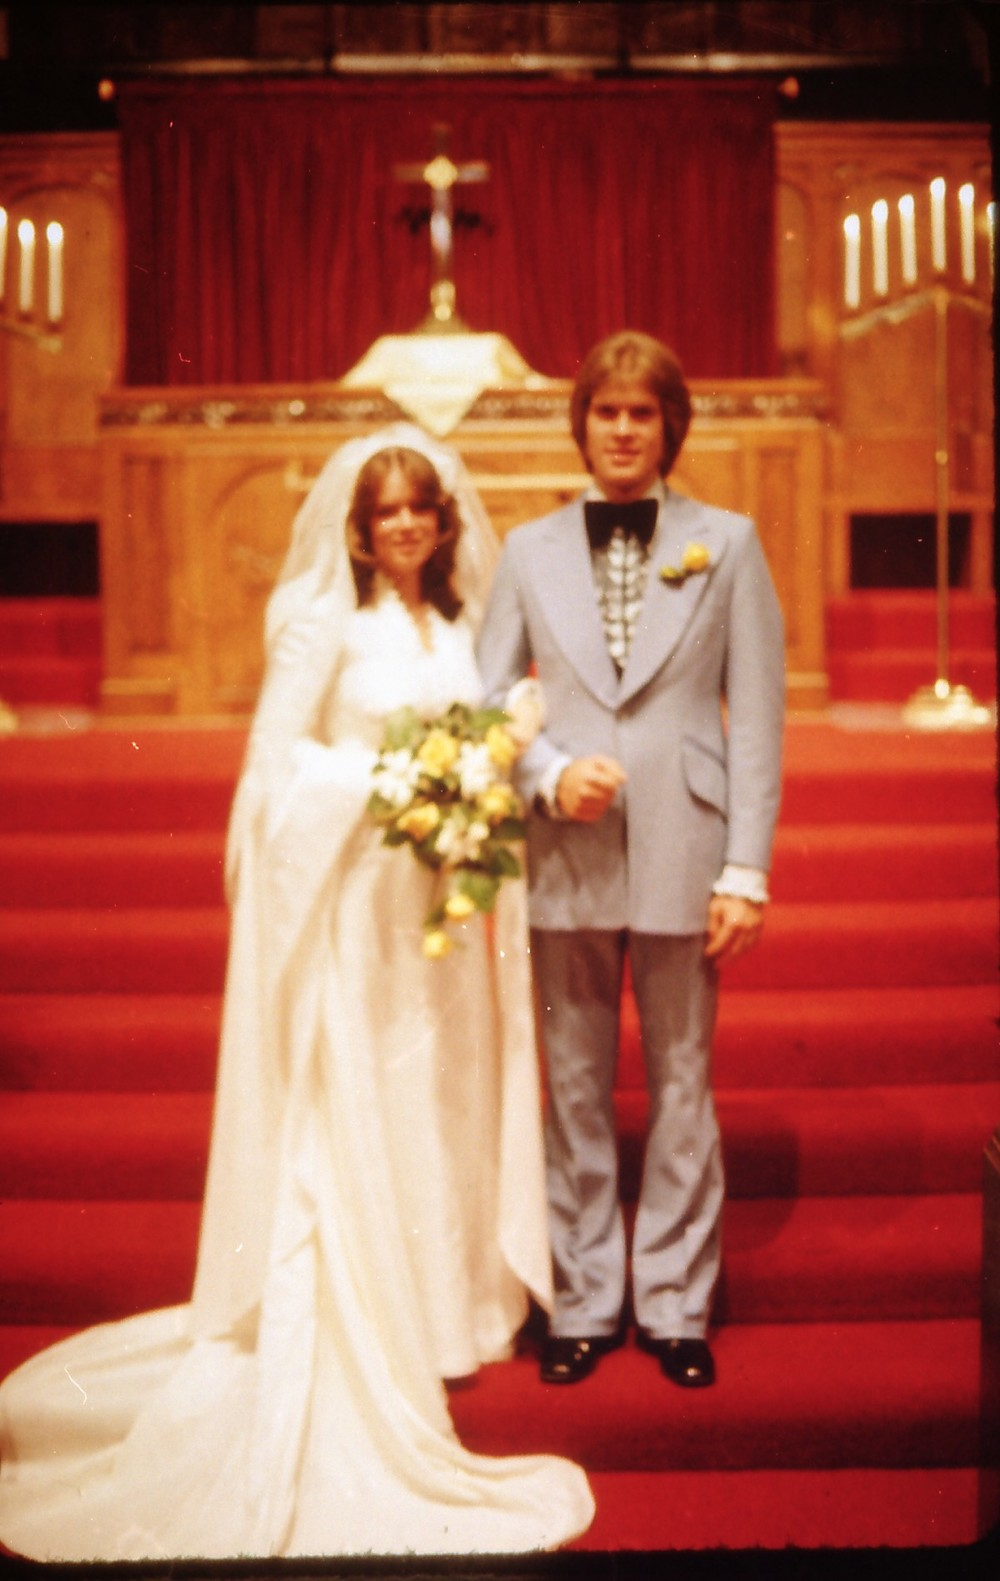 Jon, Luanne wedding 1977.jpg